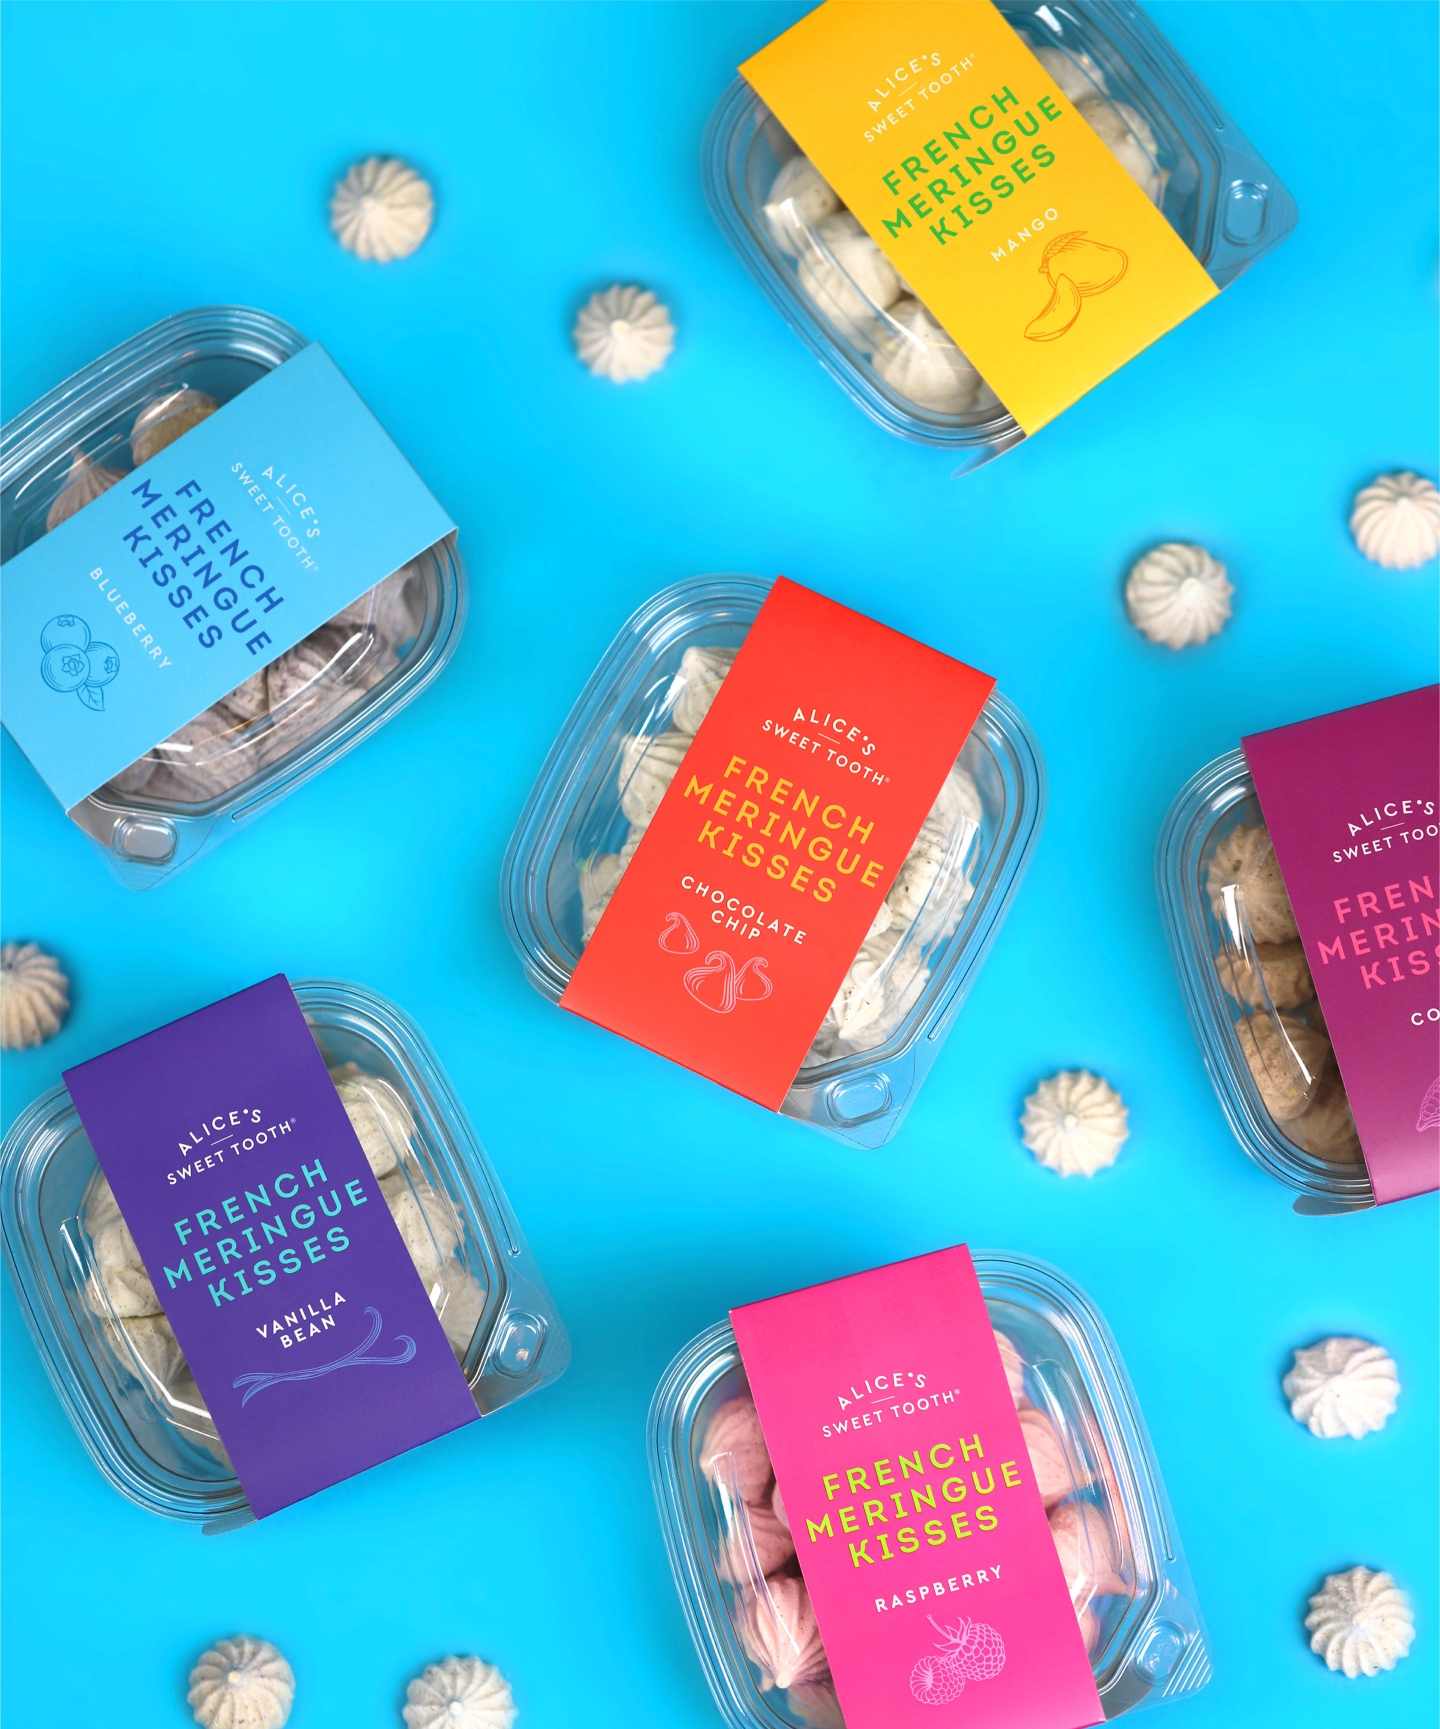 Alice's Sweet Tooth packaging flavors with meringues top view